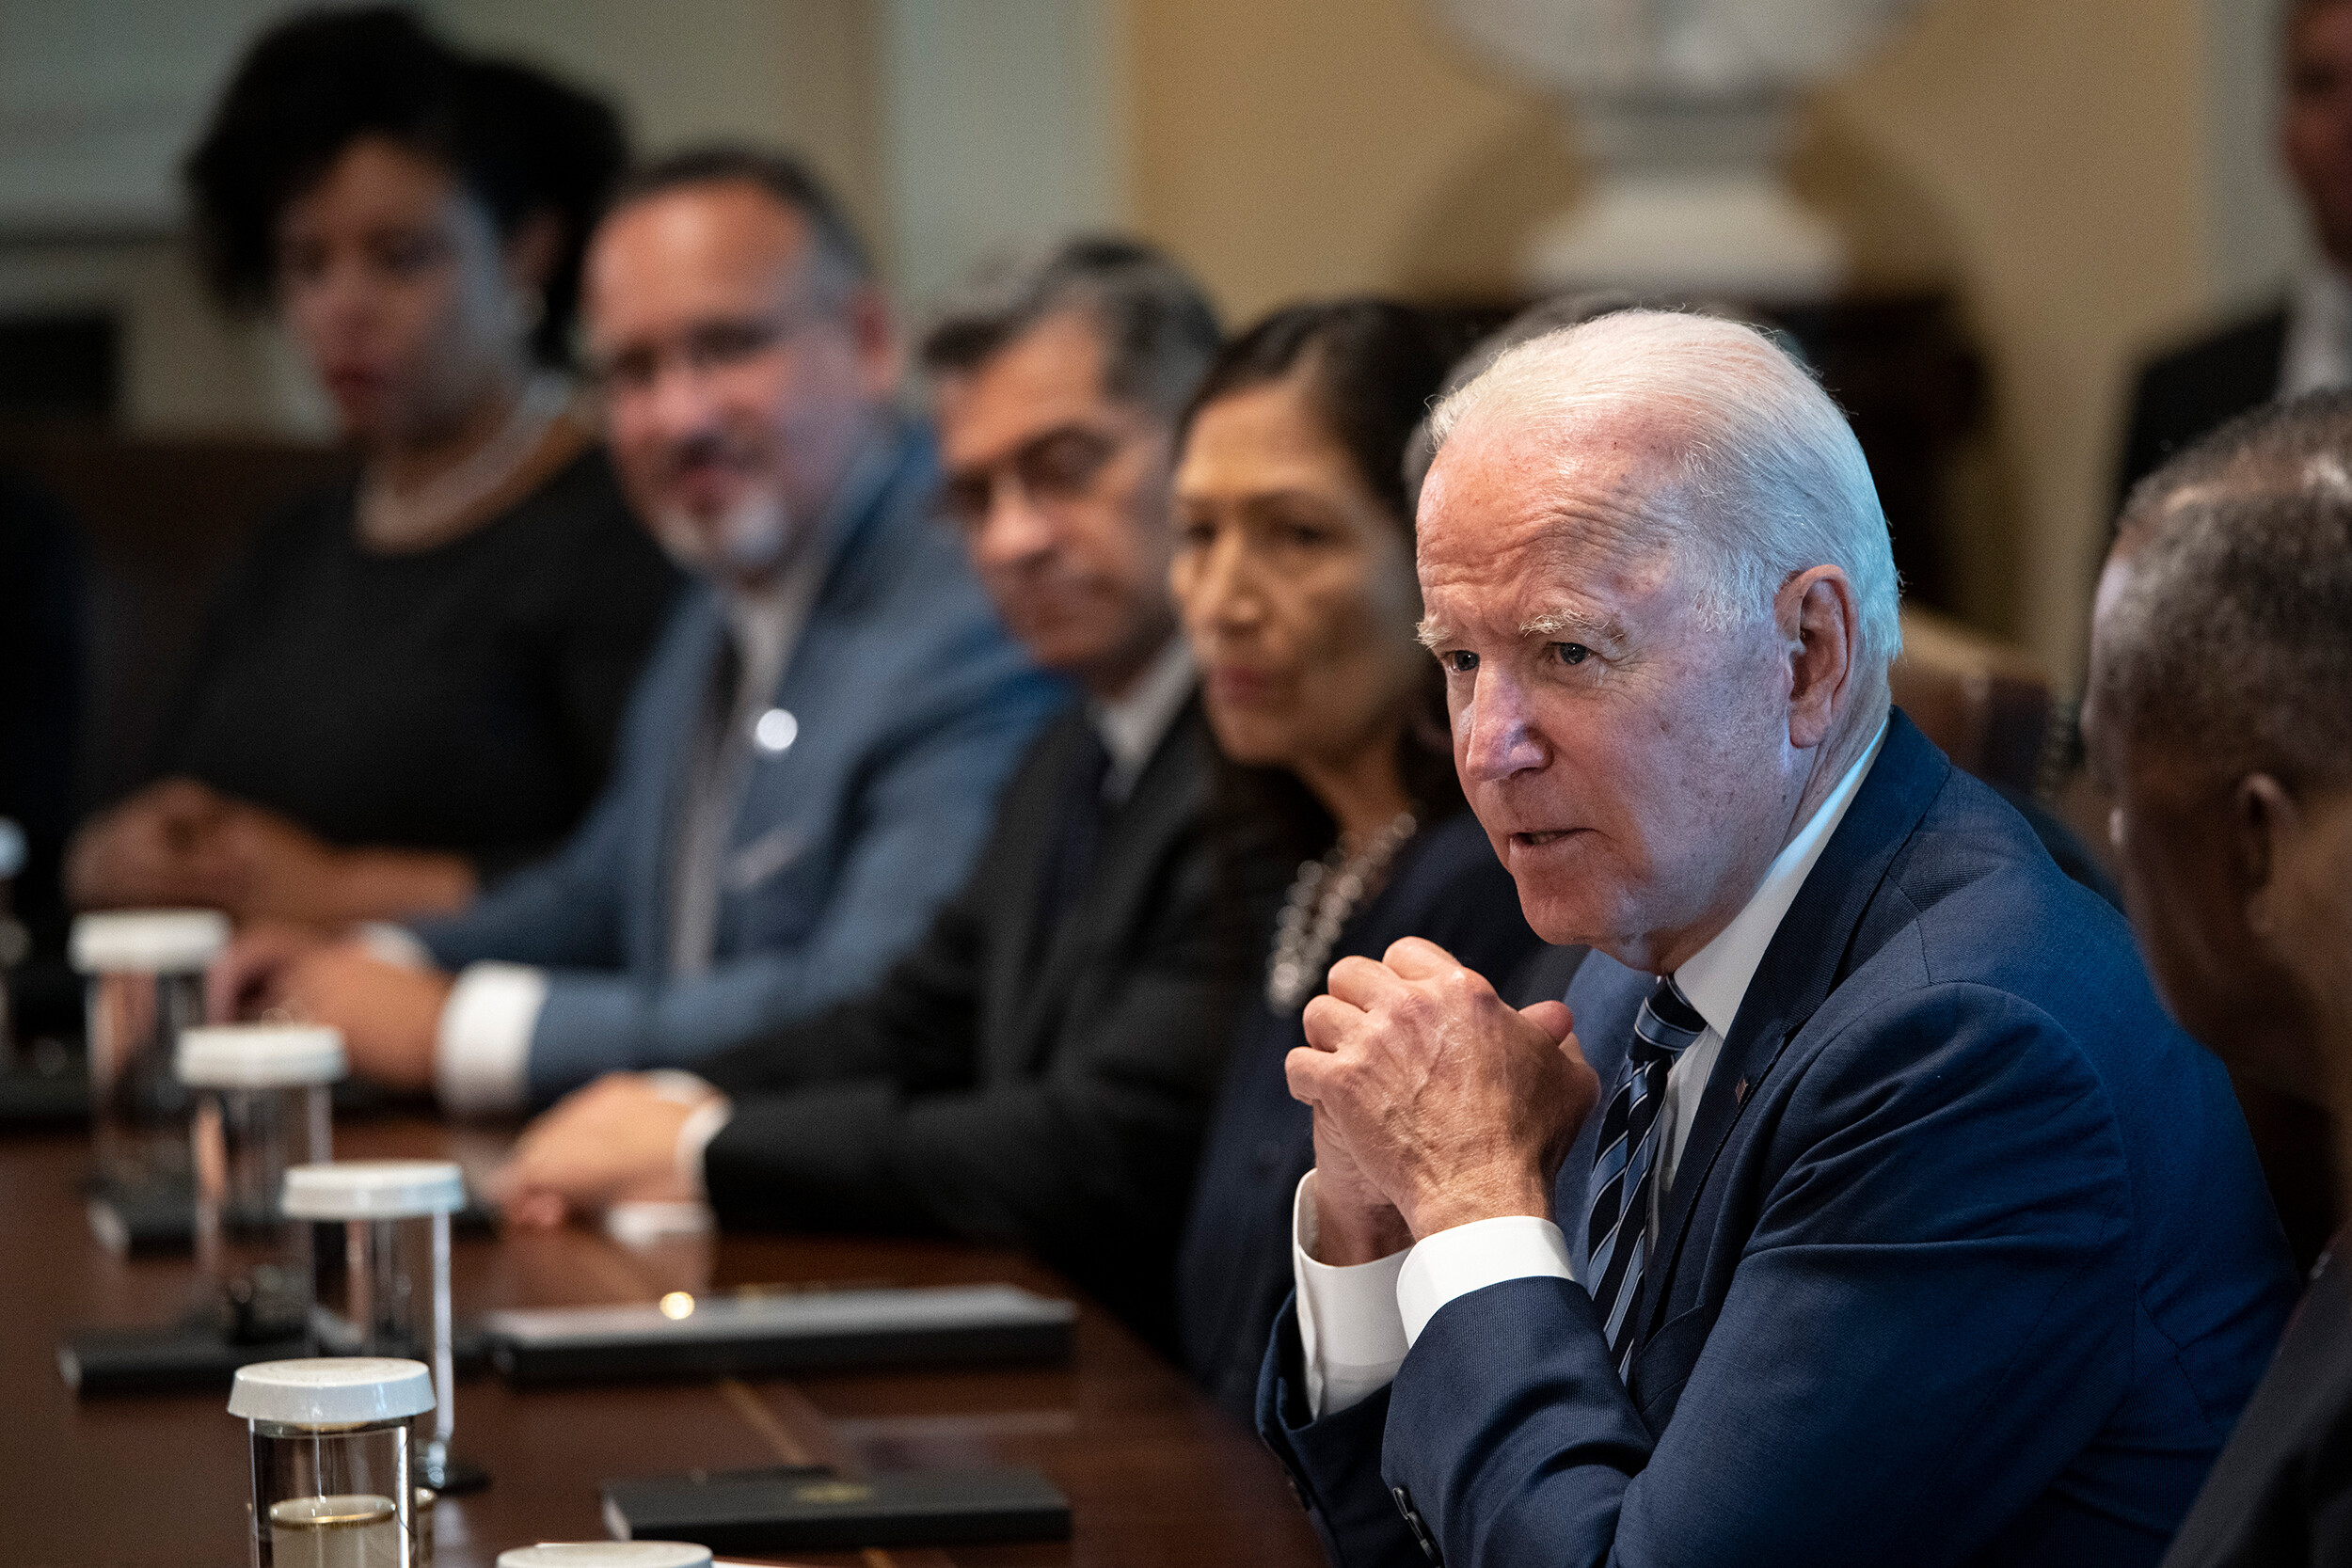 Boosters, masks and mandates: Biden's team sorts through options for containing Covid surge among unvaccinated Americans